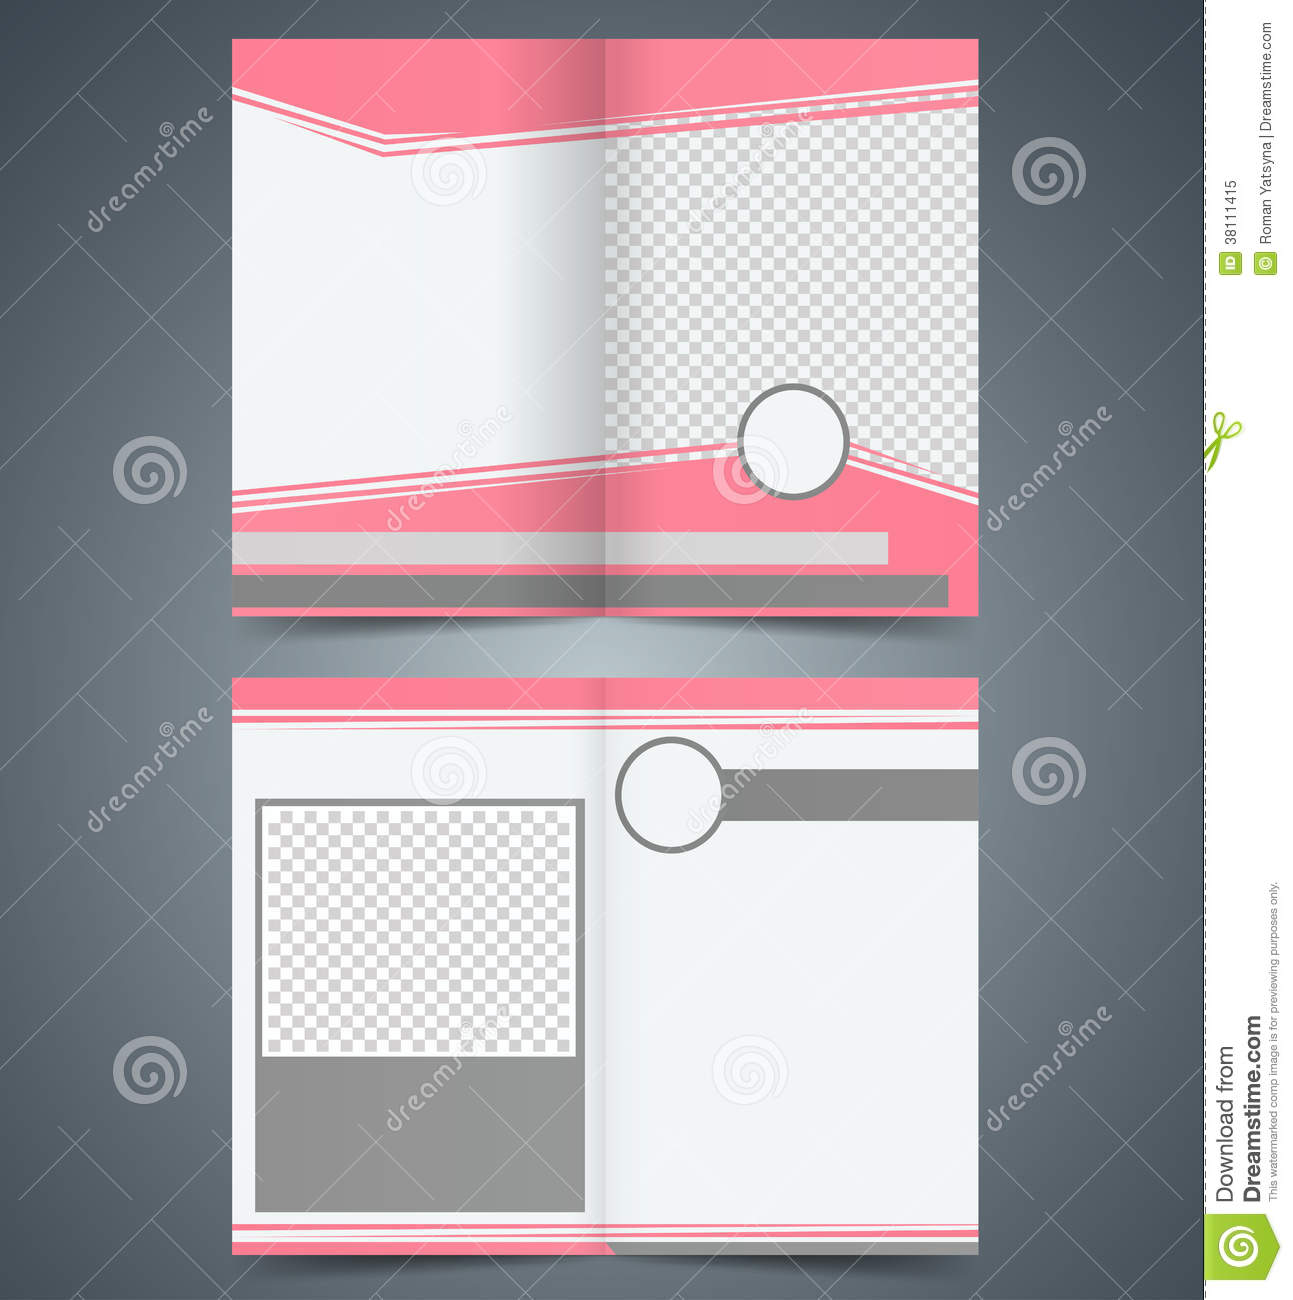 Empty bifold brochure template design with pink co stock for Booklet brochure template